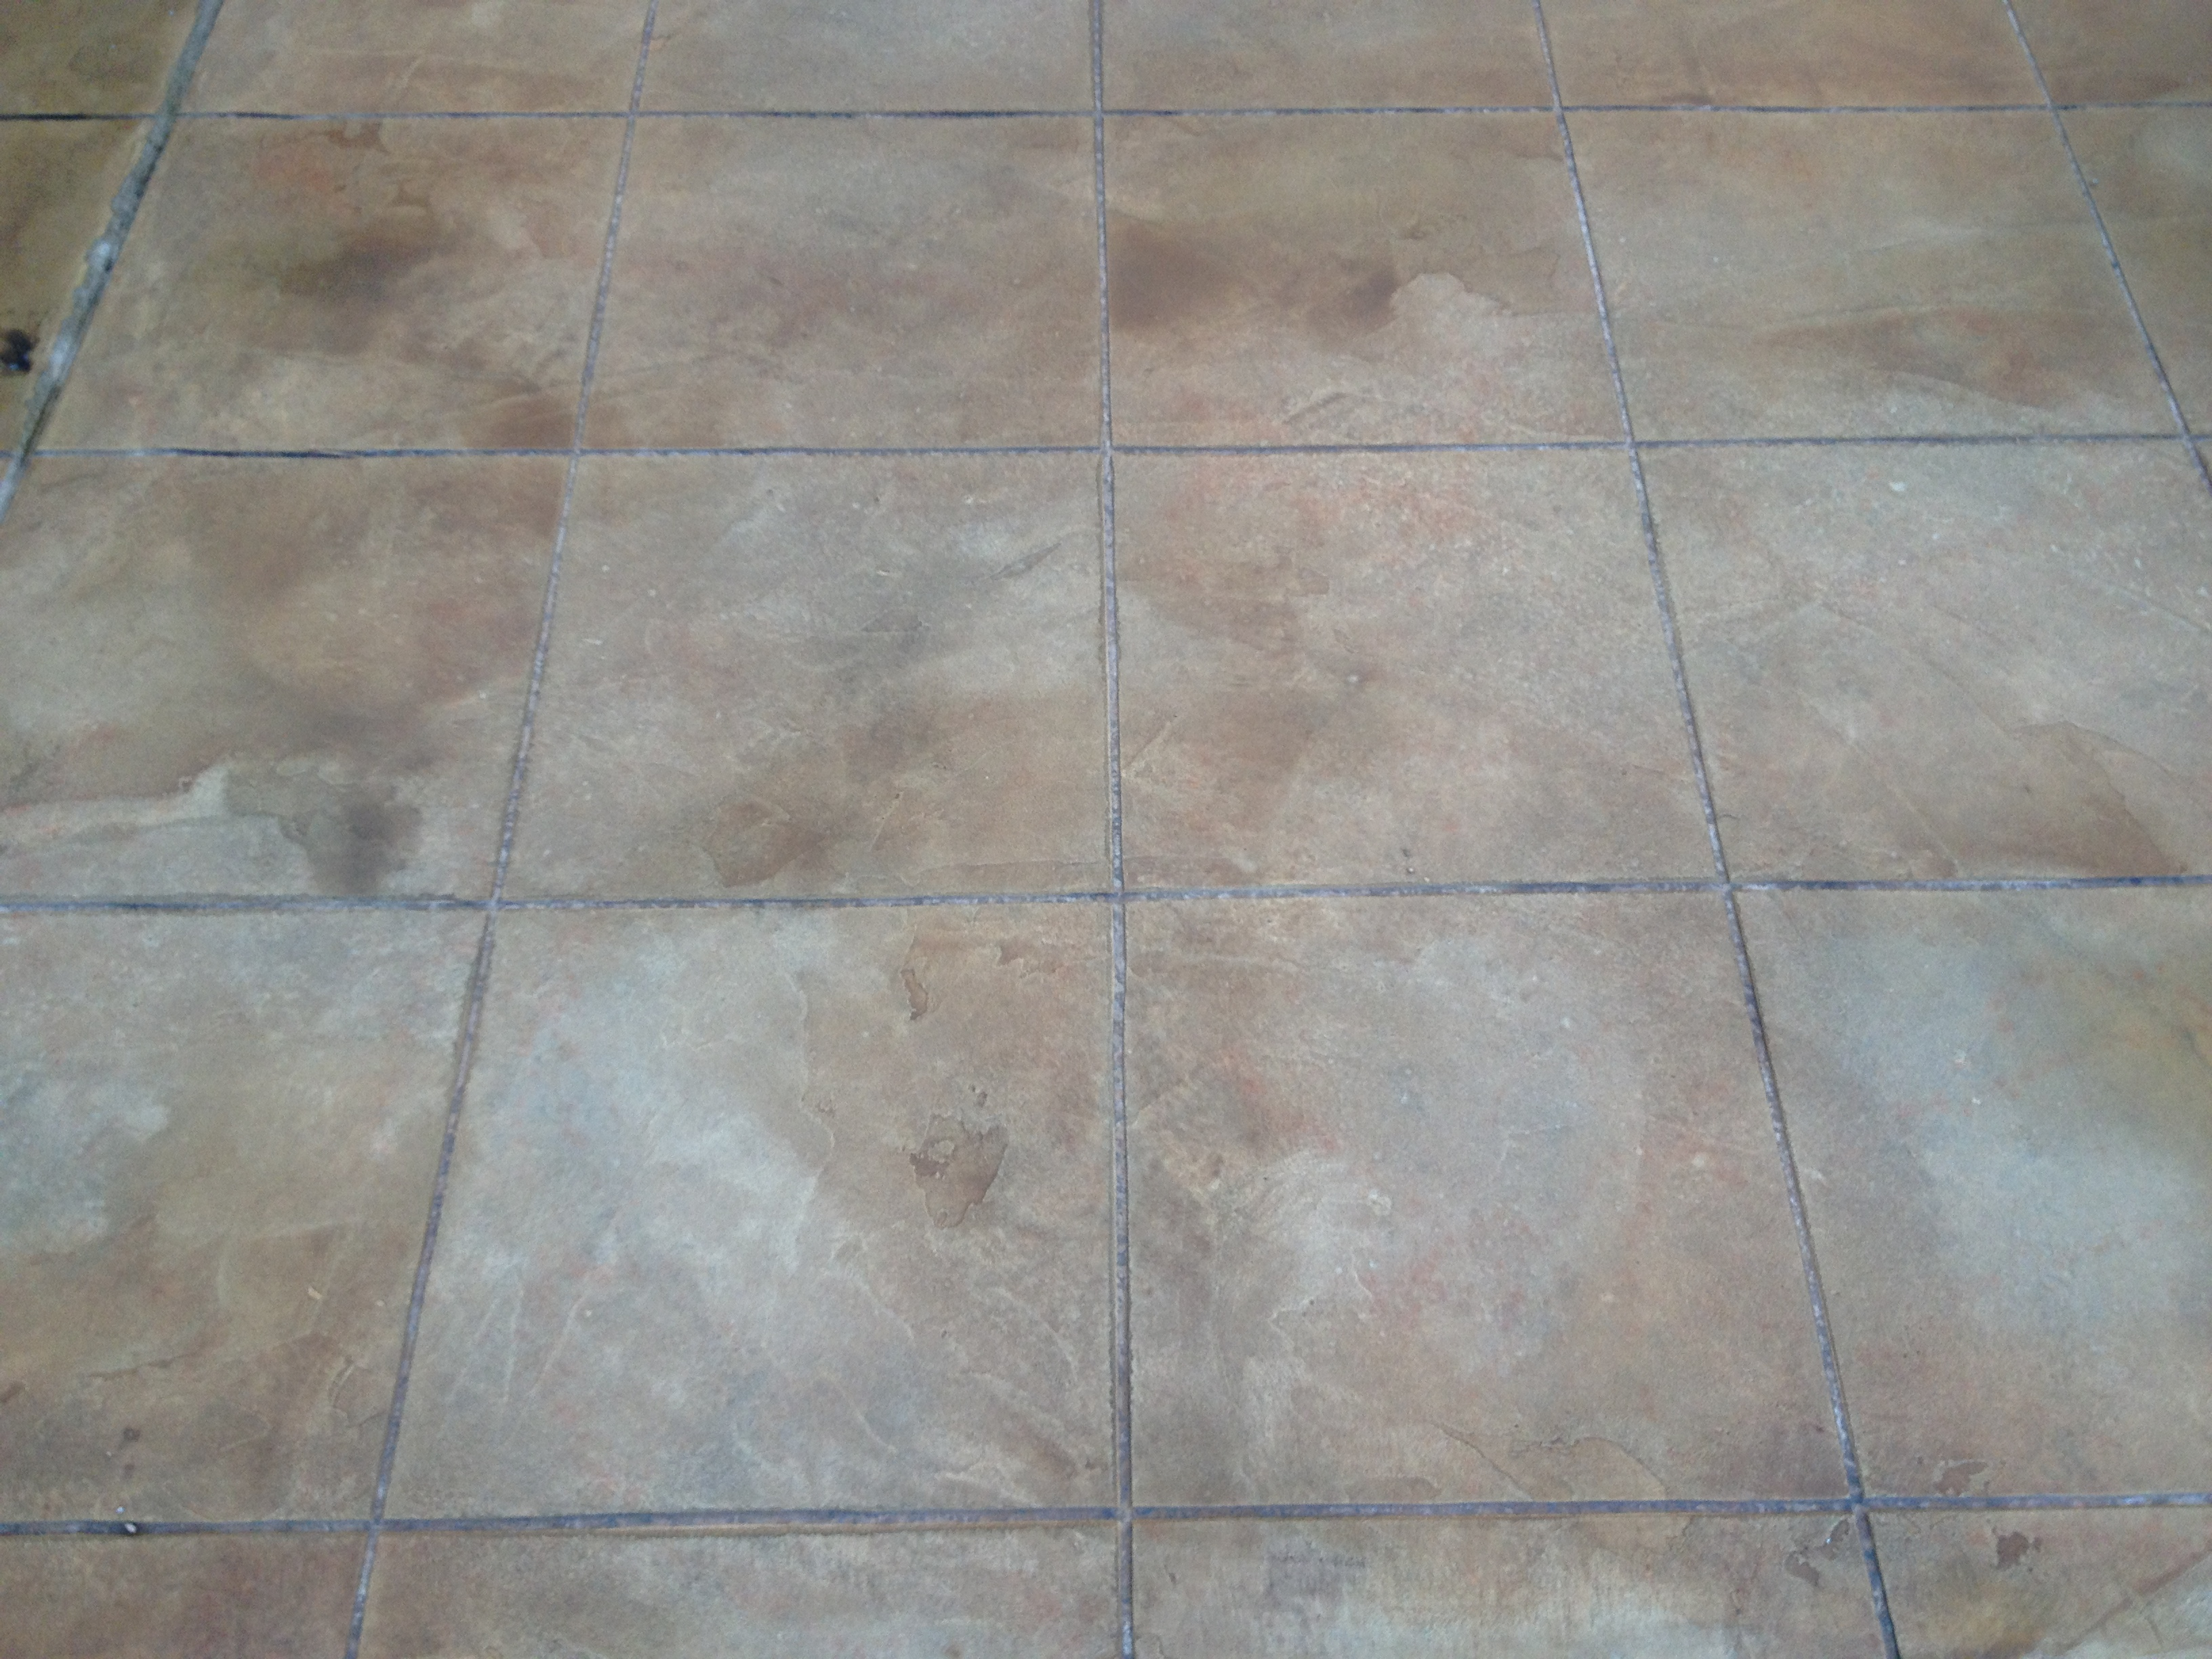 Patterned Styles - Concrete Stains - Deck Resurfacing